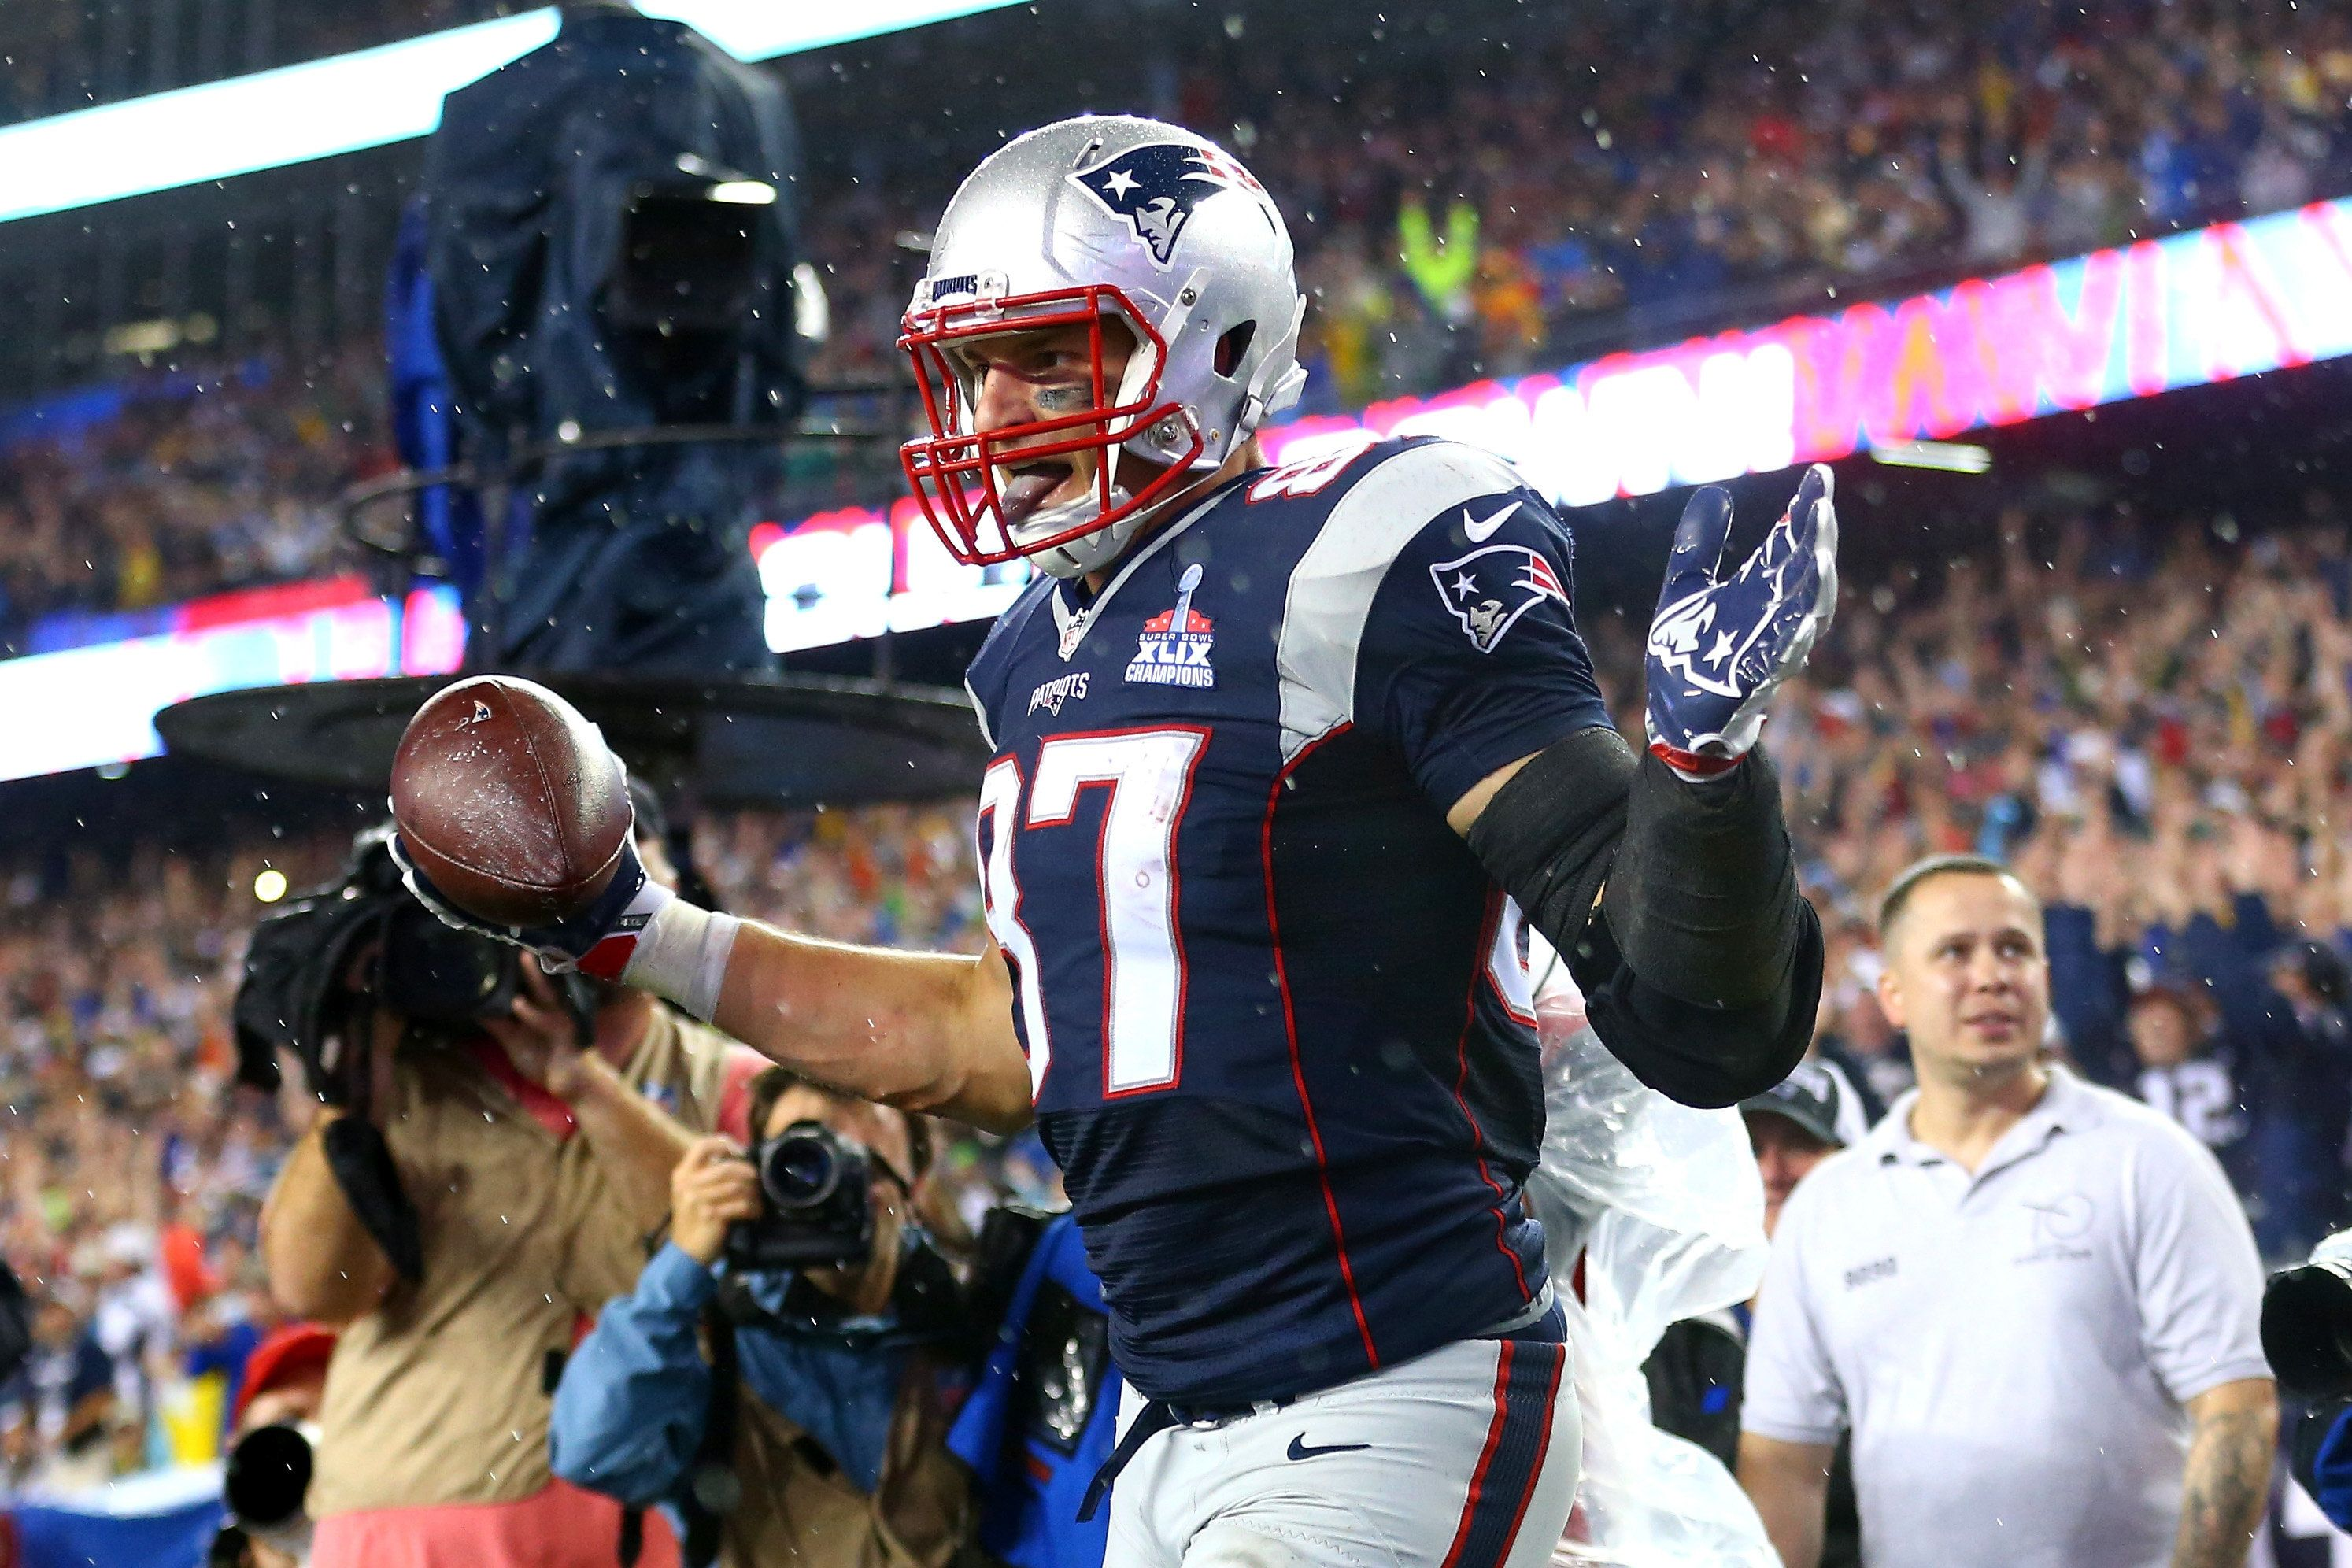 Patriots tight end Rob Gronkowski scored three touchdowns on Thursday night, helping New England to defeat the Steelers in the NFL season opener.